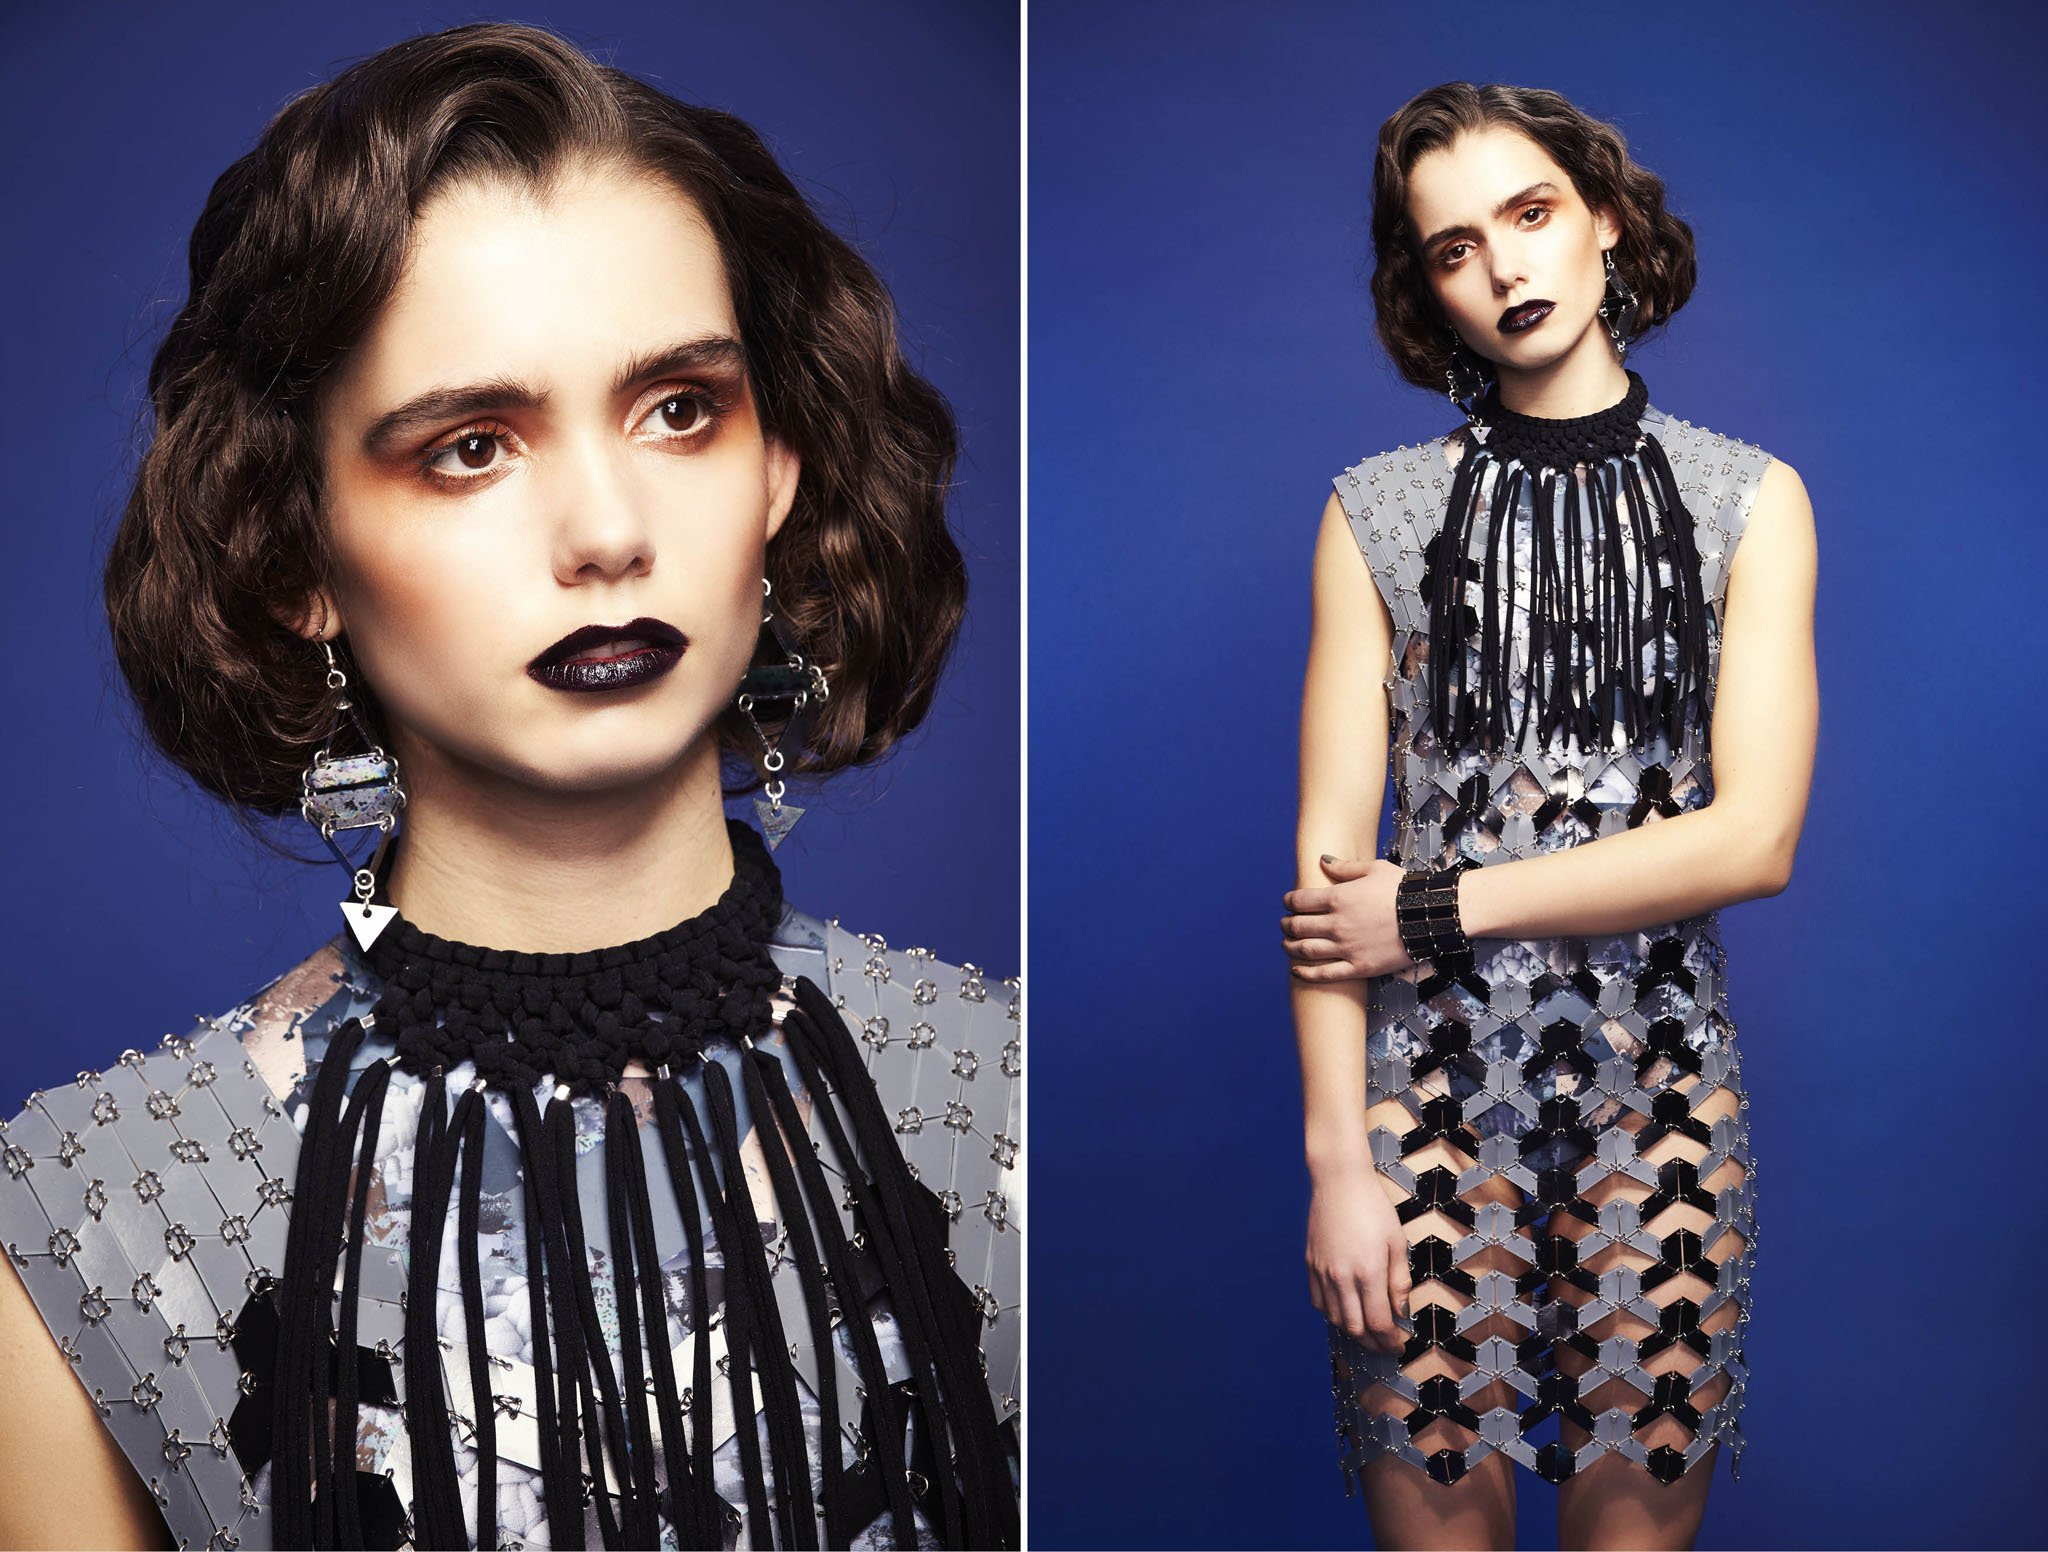 AW16_WEBSITE_IMAGES_LAYOUT12_2048x2048.jpg